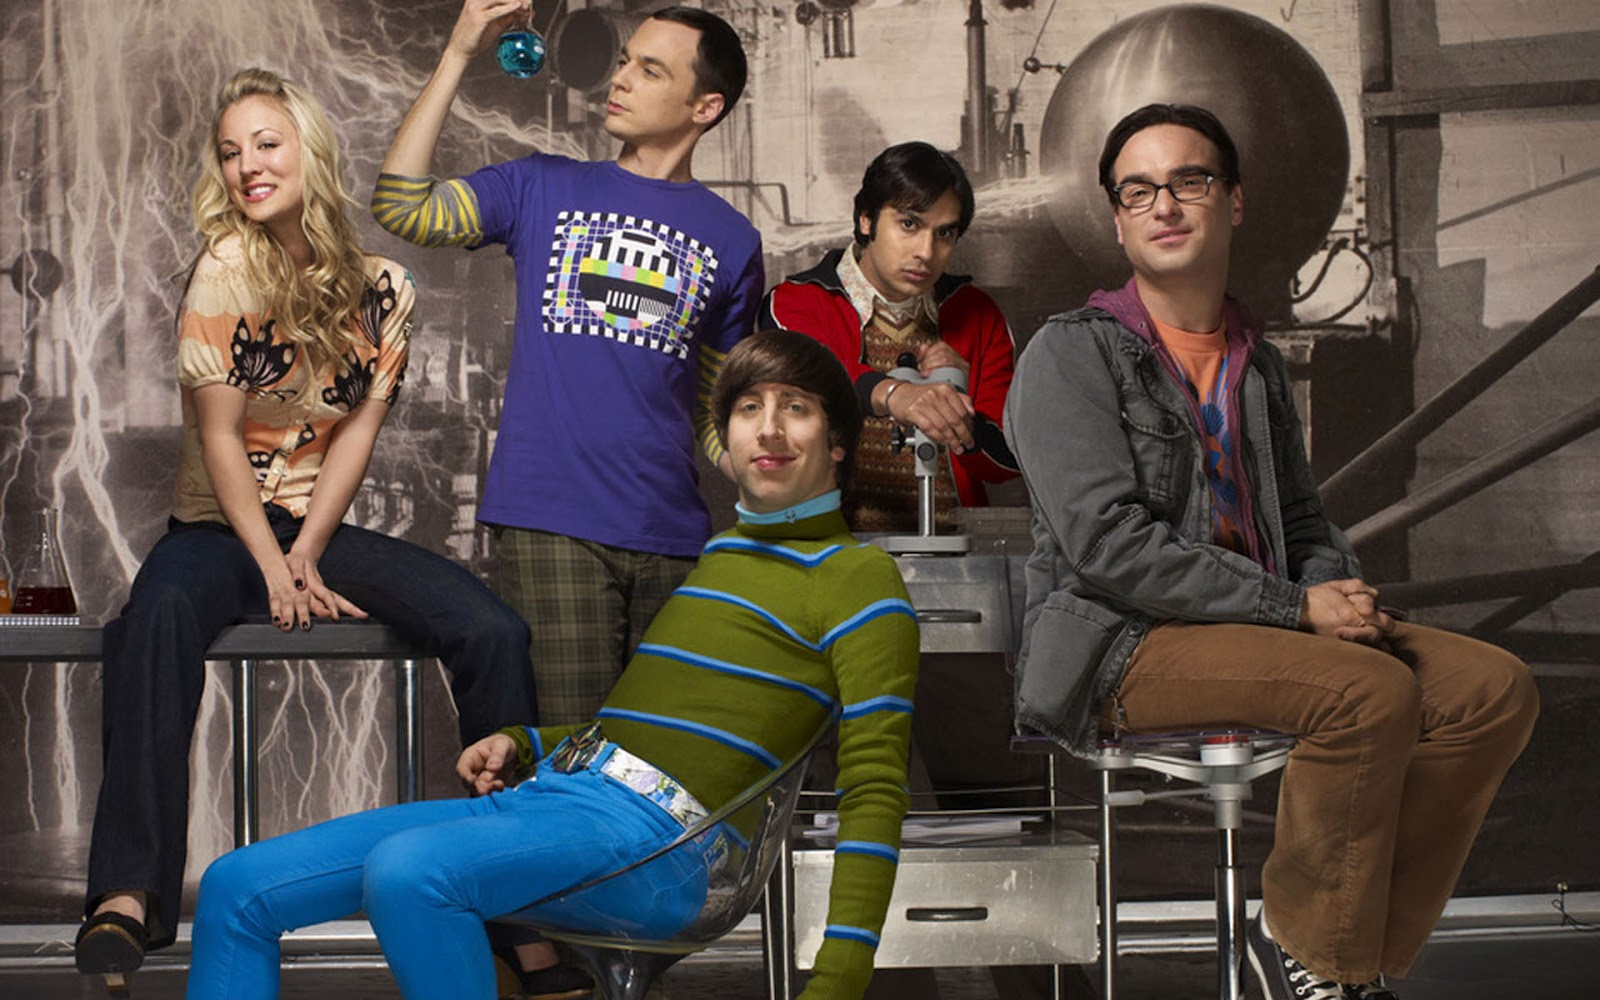 http://1.bp.blogspot.com/-AsjFDjJMp8g/UCS2z1EjICI/AAAAAAAALoQ/qx_ktuvL7oU/s1600/the-big-bang-theory-team.jpg